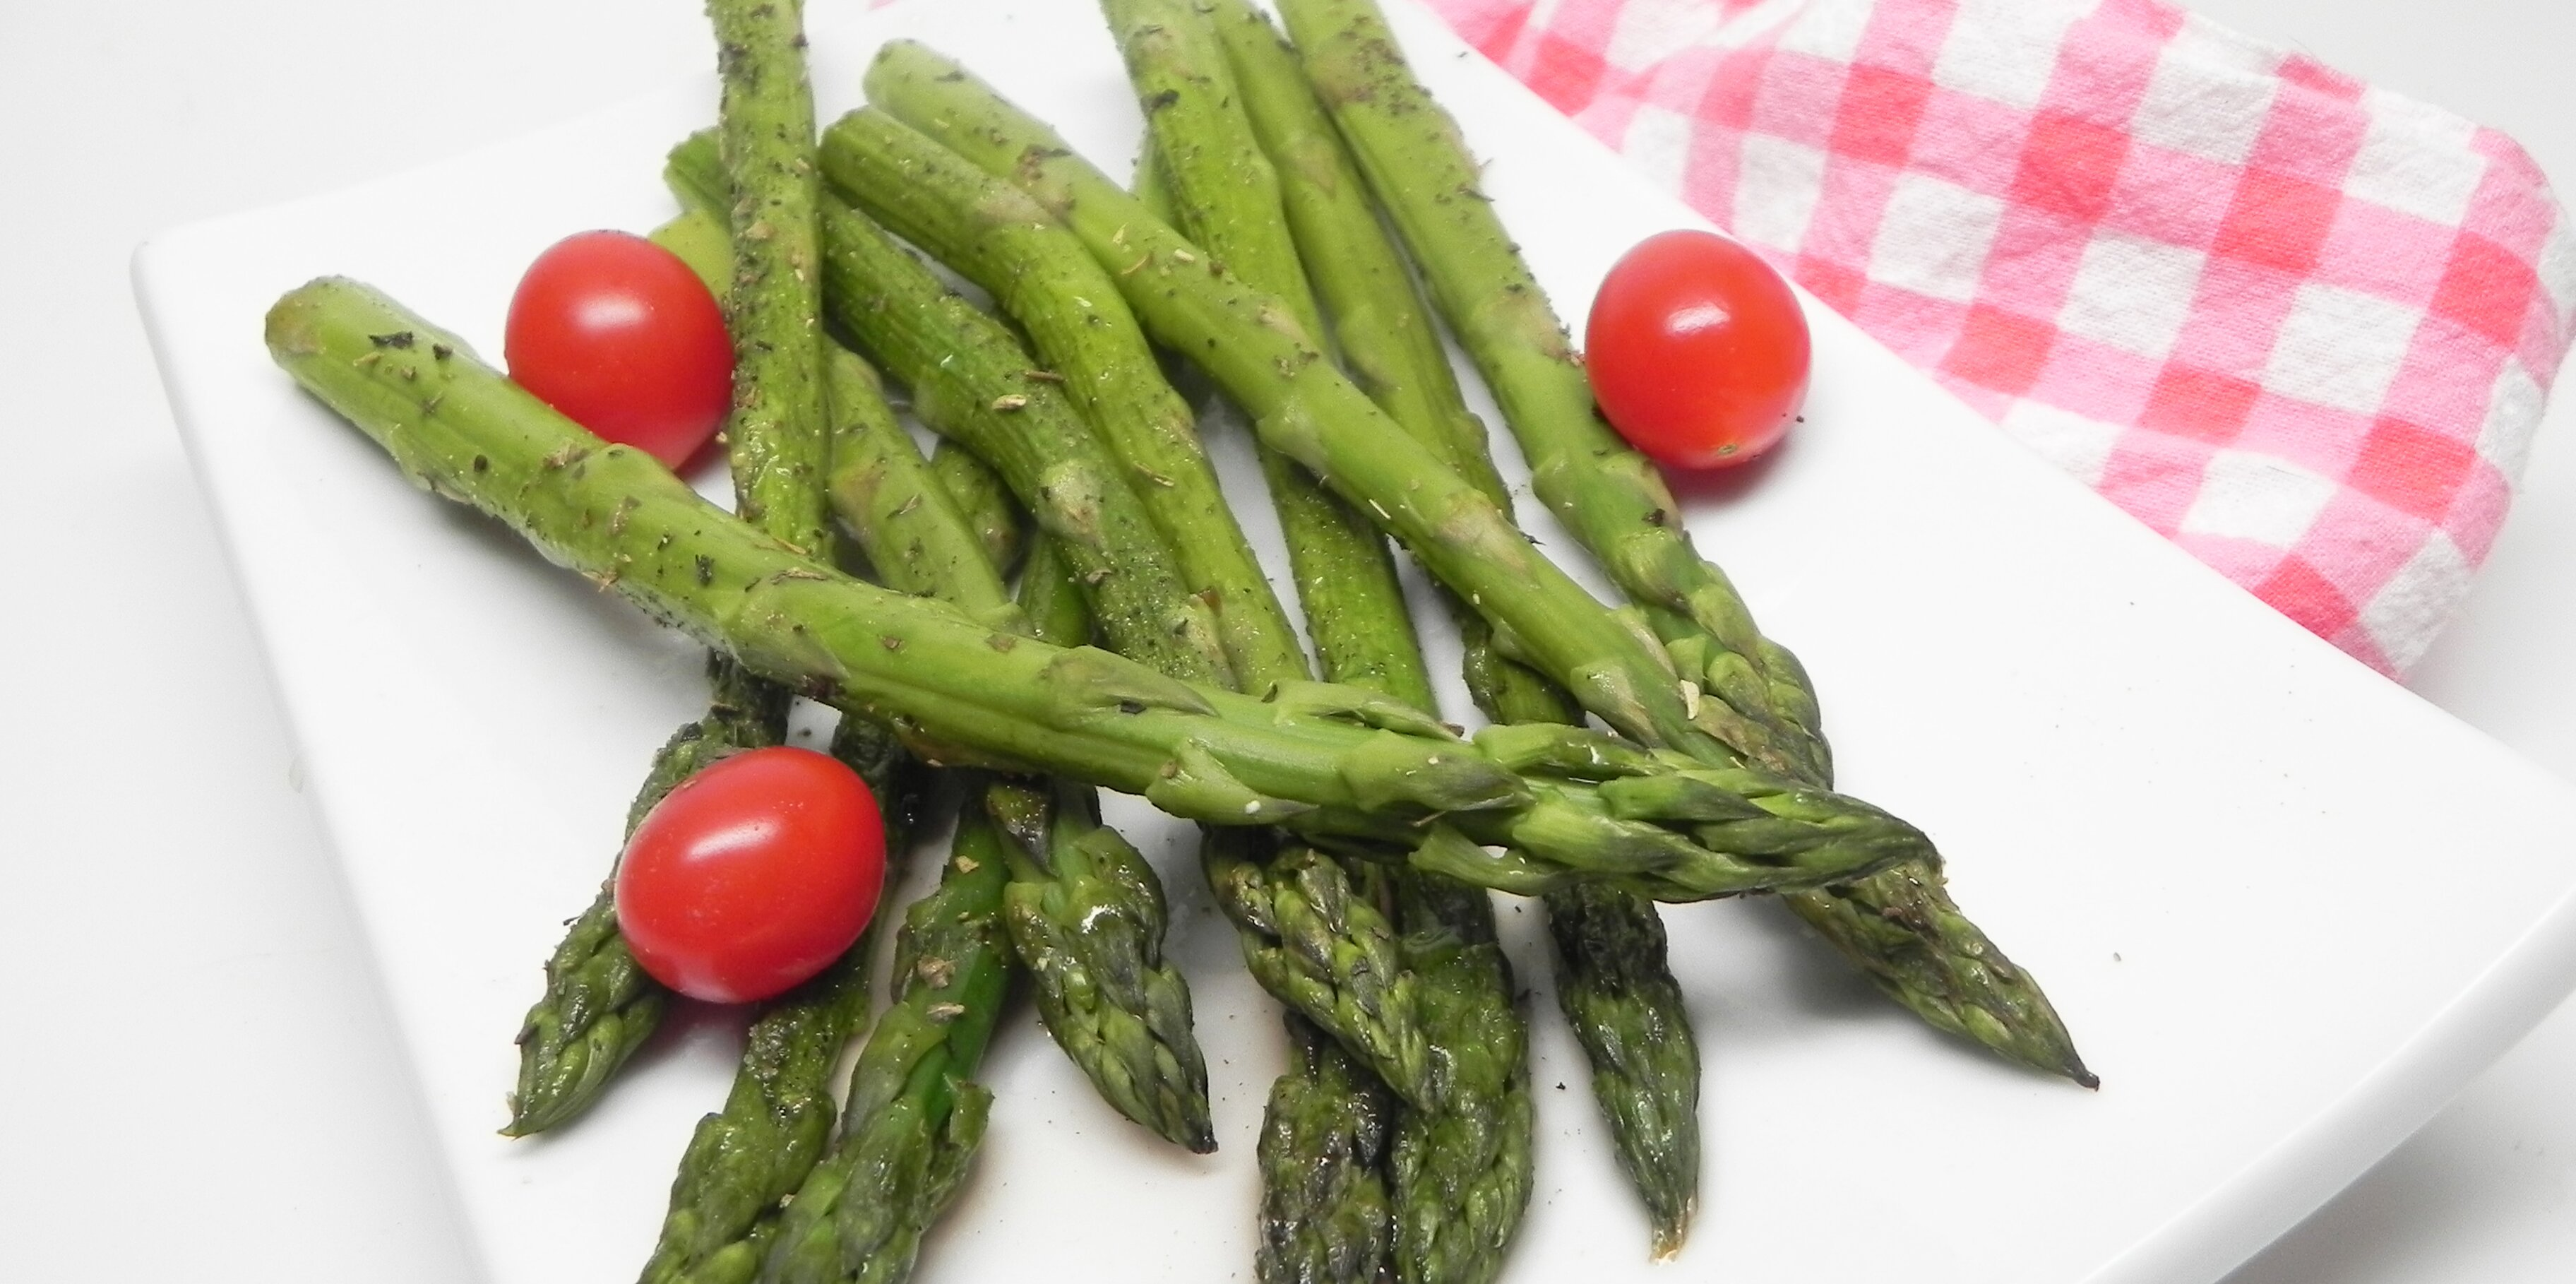 baked asparagus with red wine vinegar recipe